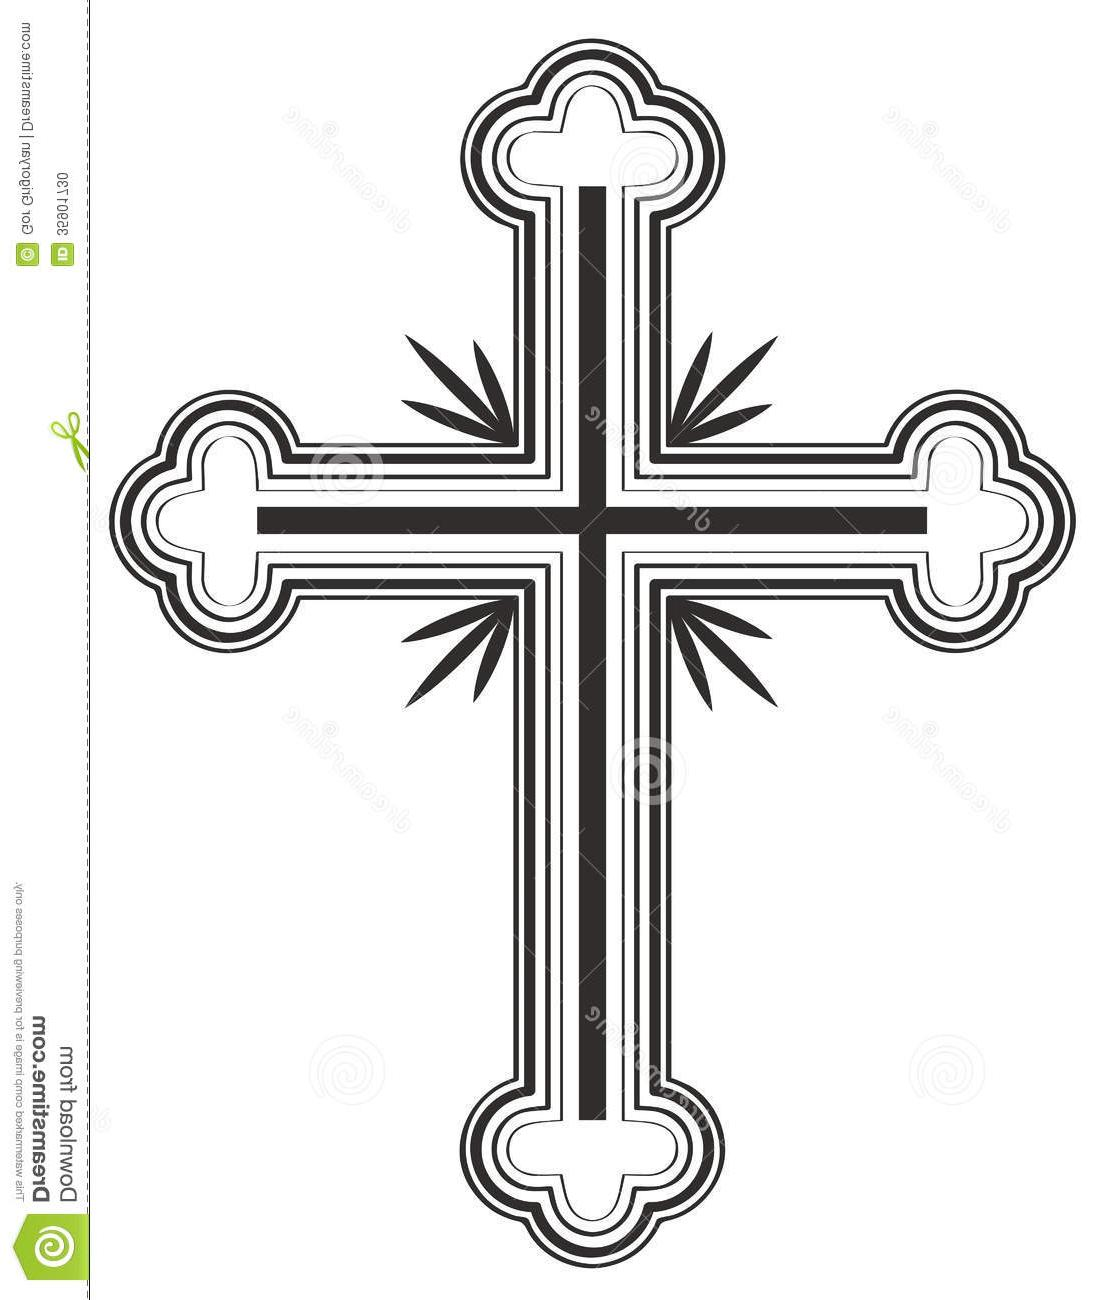 1097x1300 Hd Traditional Armenian Apostolic Church Cross Clip Art Vector